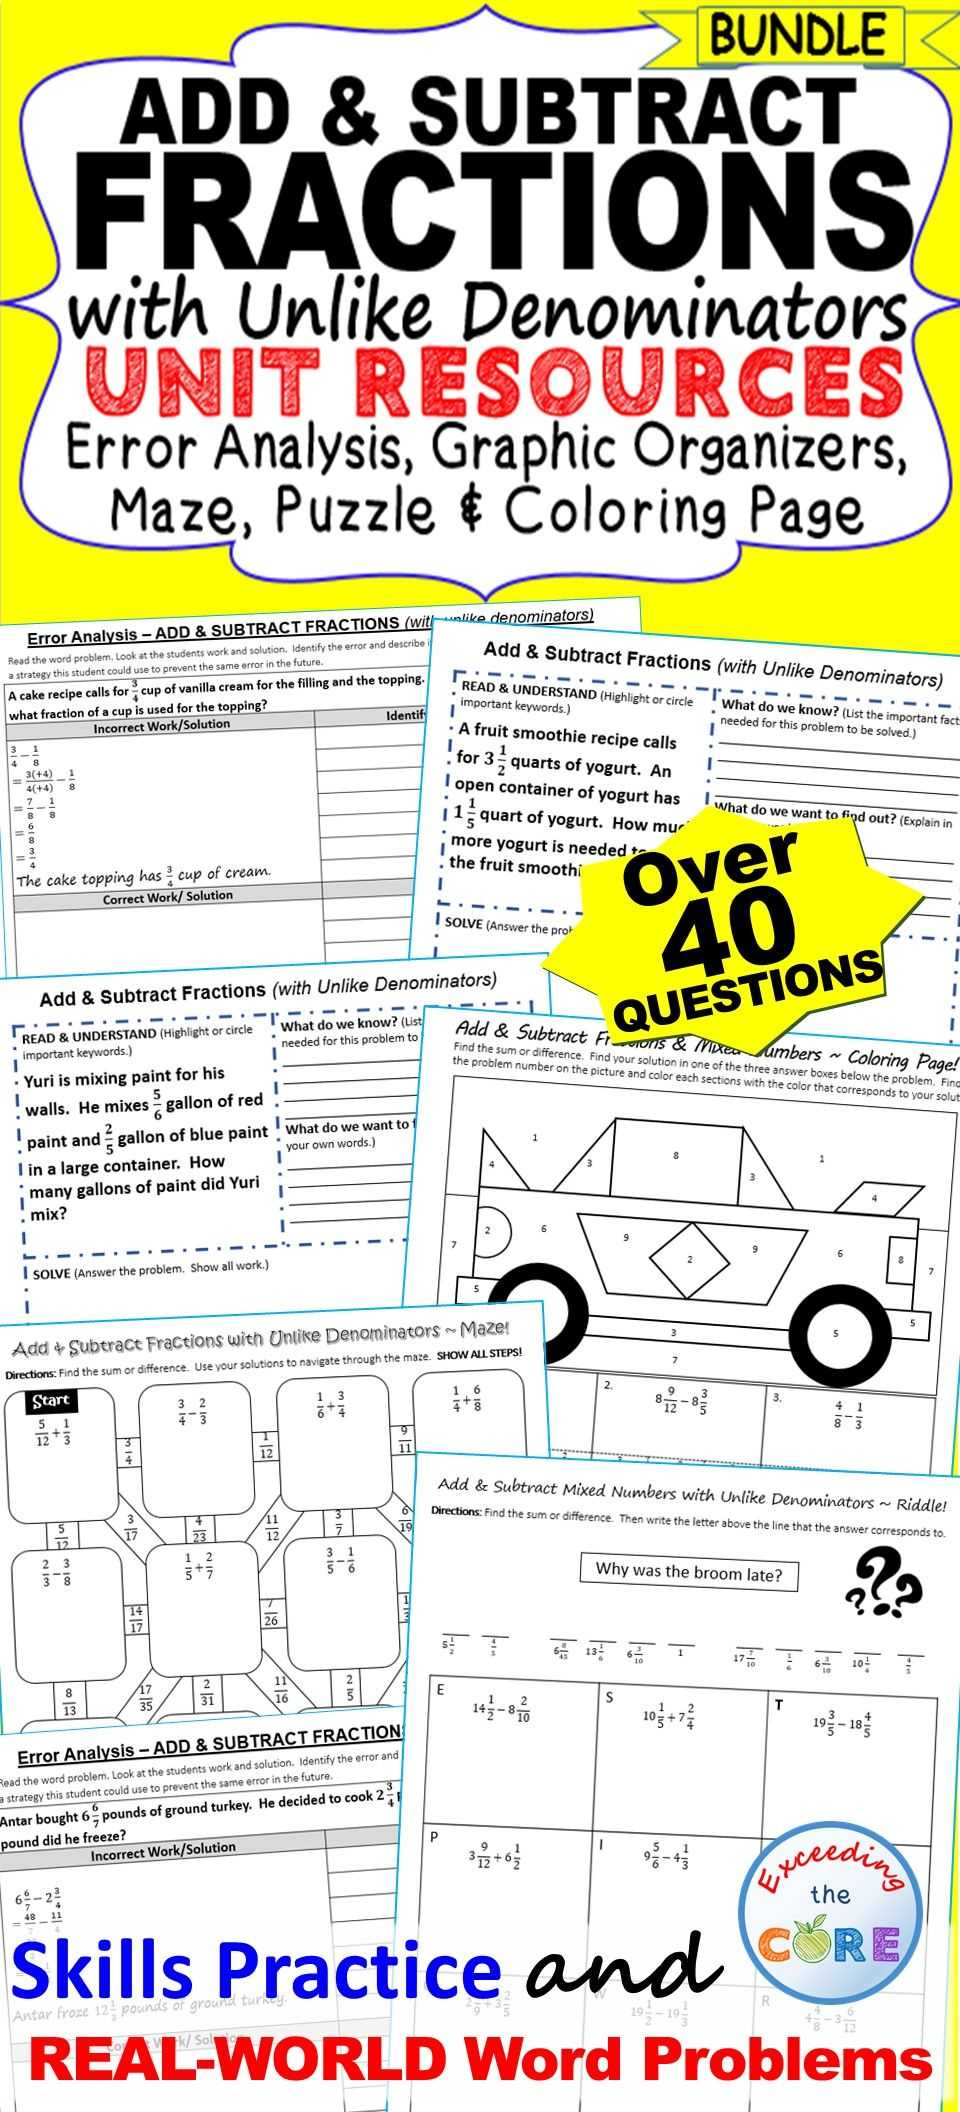 Solving Addition and Subtraction Equations Worksheets Answers or Add & Subtract Fractions Bundle Error Analysis Graphic organizers